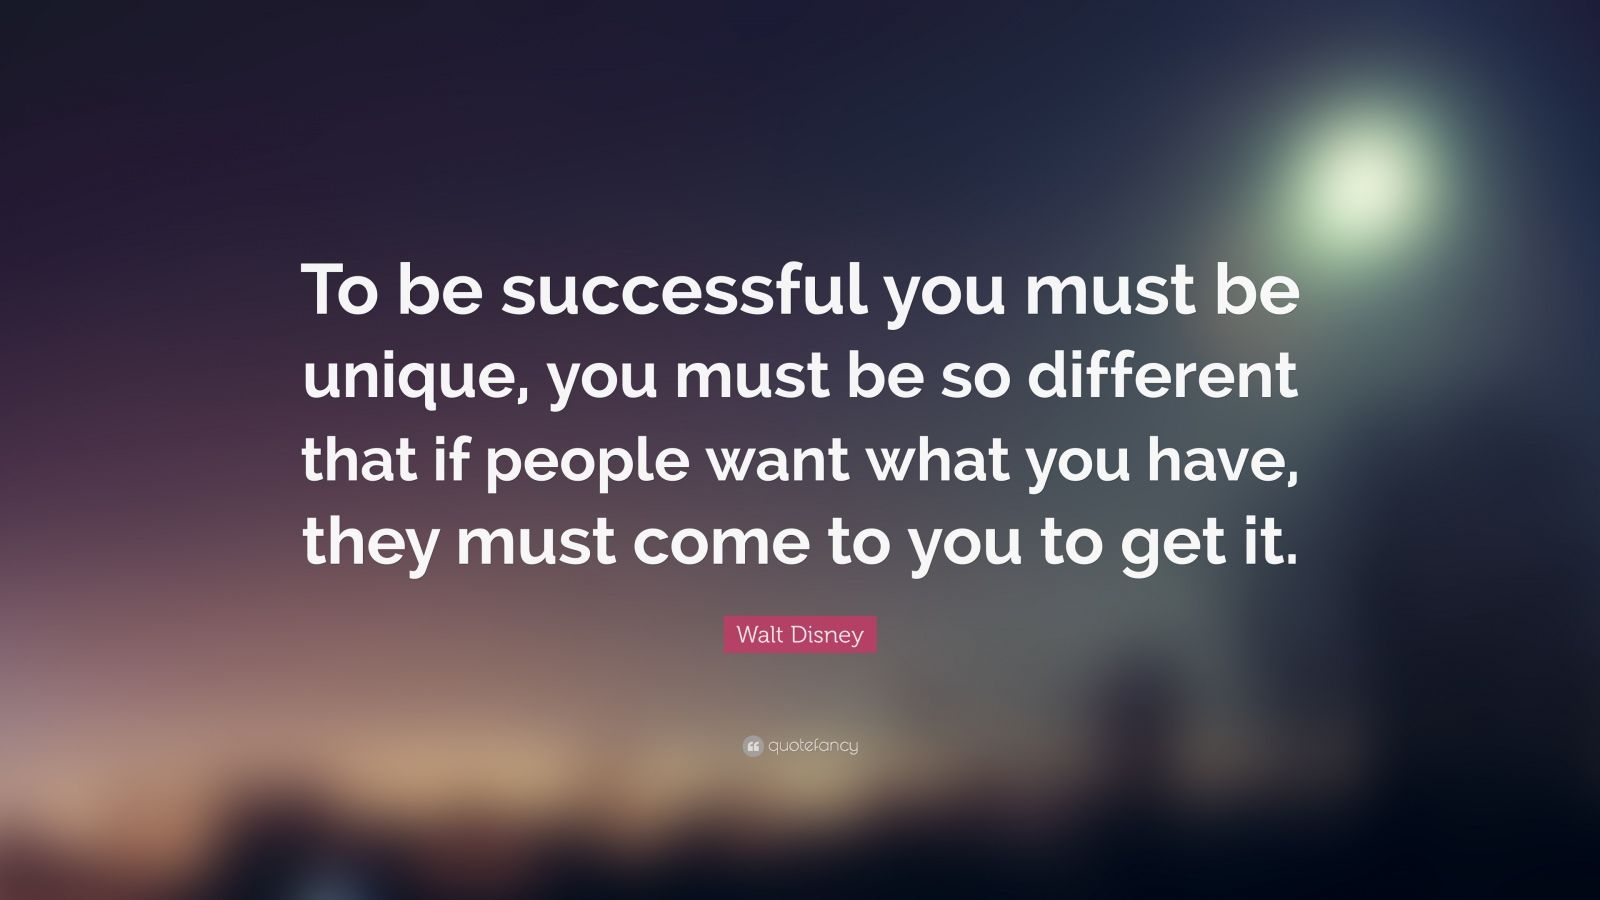 """Walt Disney Quote: """"To be successful you must be unique, you must be so different that if people want what you have, they must come to you to get it."""""""